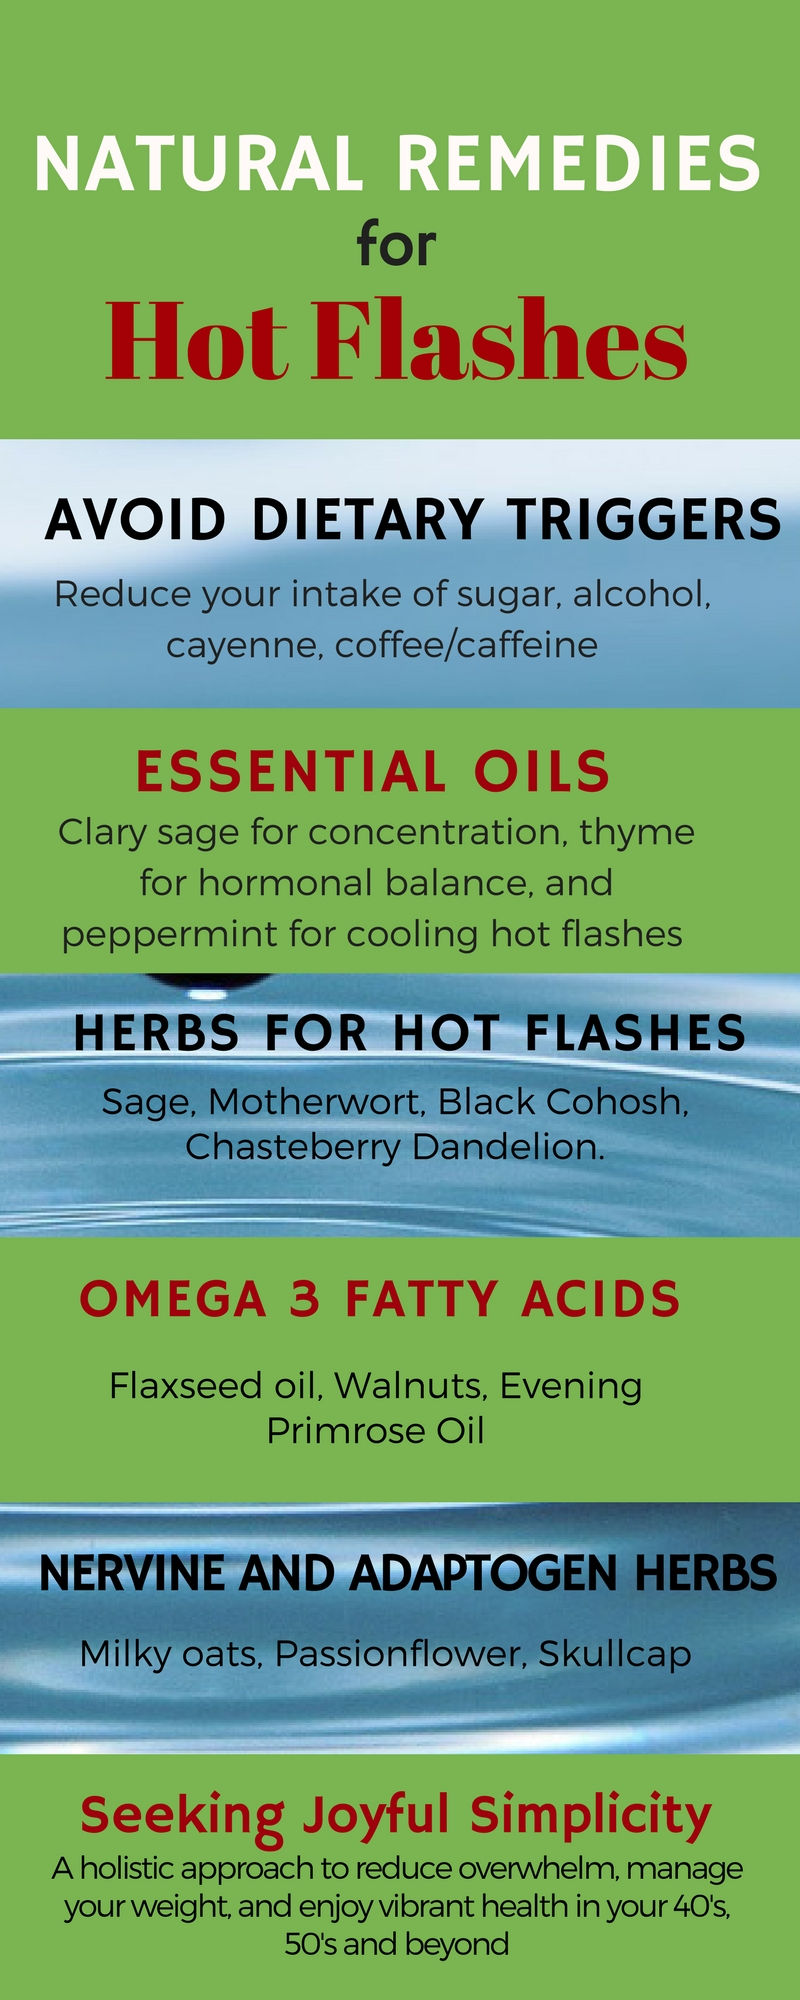 Not only uncomfortable, hot flashes can be embarrassing and happen at the most inconvenient times. There are effective natural remedies for hot flashes, and with small changes in diet and using herbs for hot flashes, many women find complete relief. #hotflashes #midlife #menopause